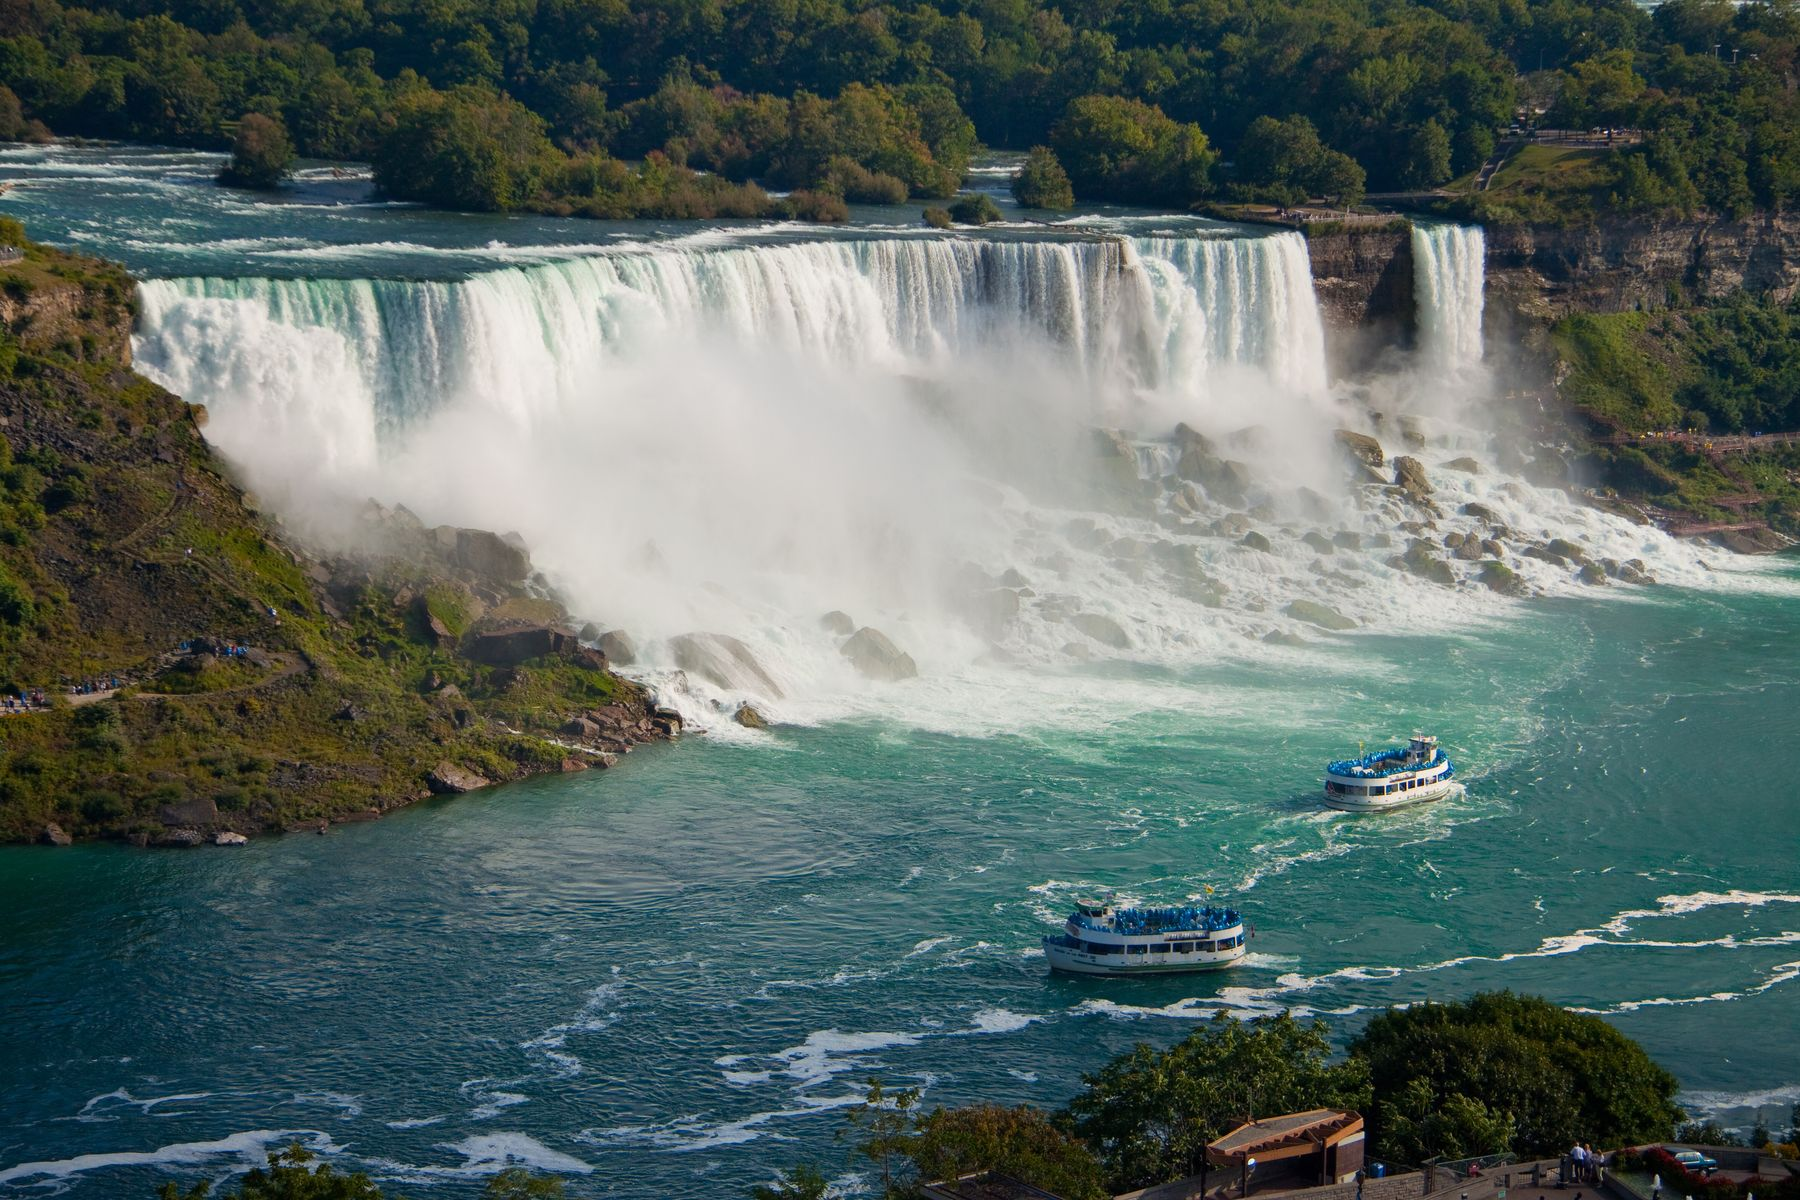 niagara falls is one of Ontario's top attractions